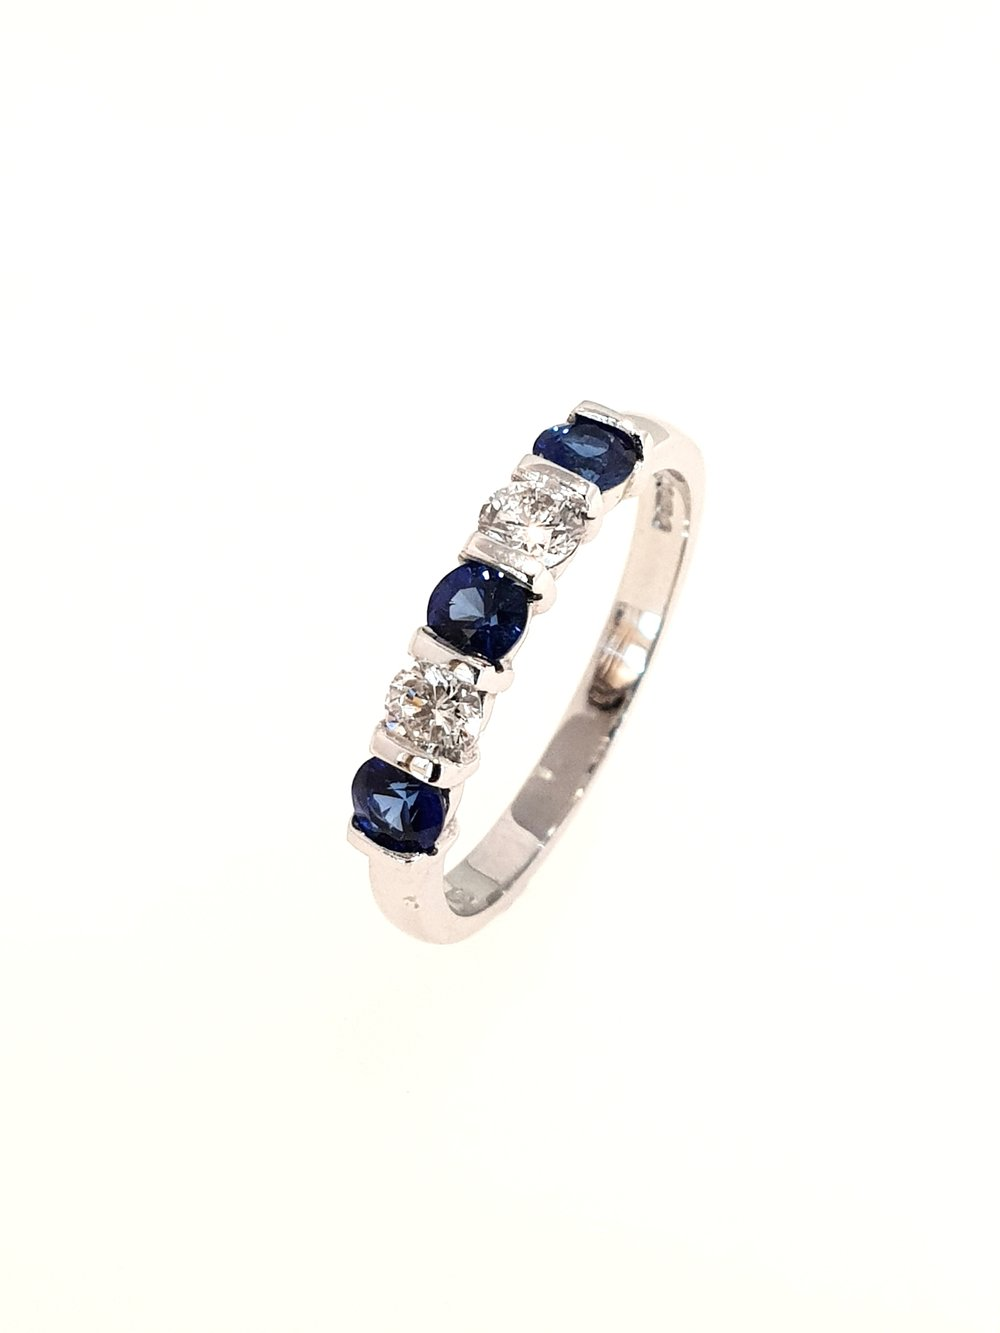 18ct White Gold Sapphire & Diamond Ring  .30ct, G, SI1 (Dia) & .55ct (Saph)  Stock Code: N8526  £1575